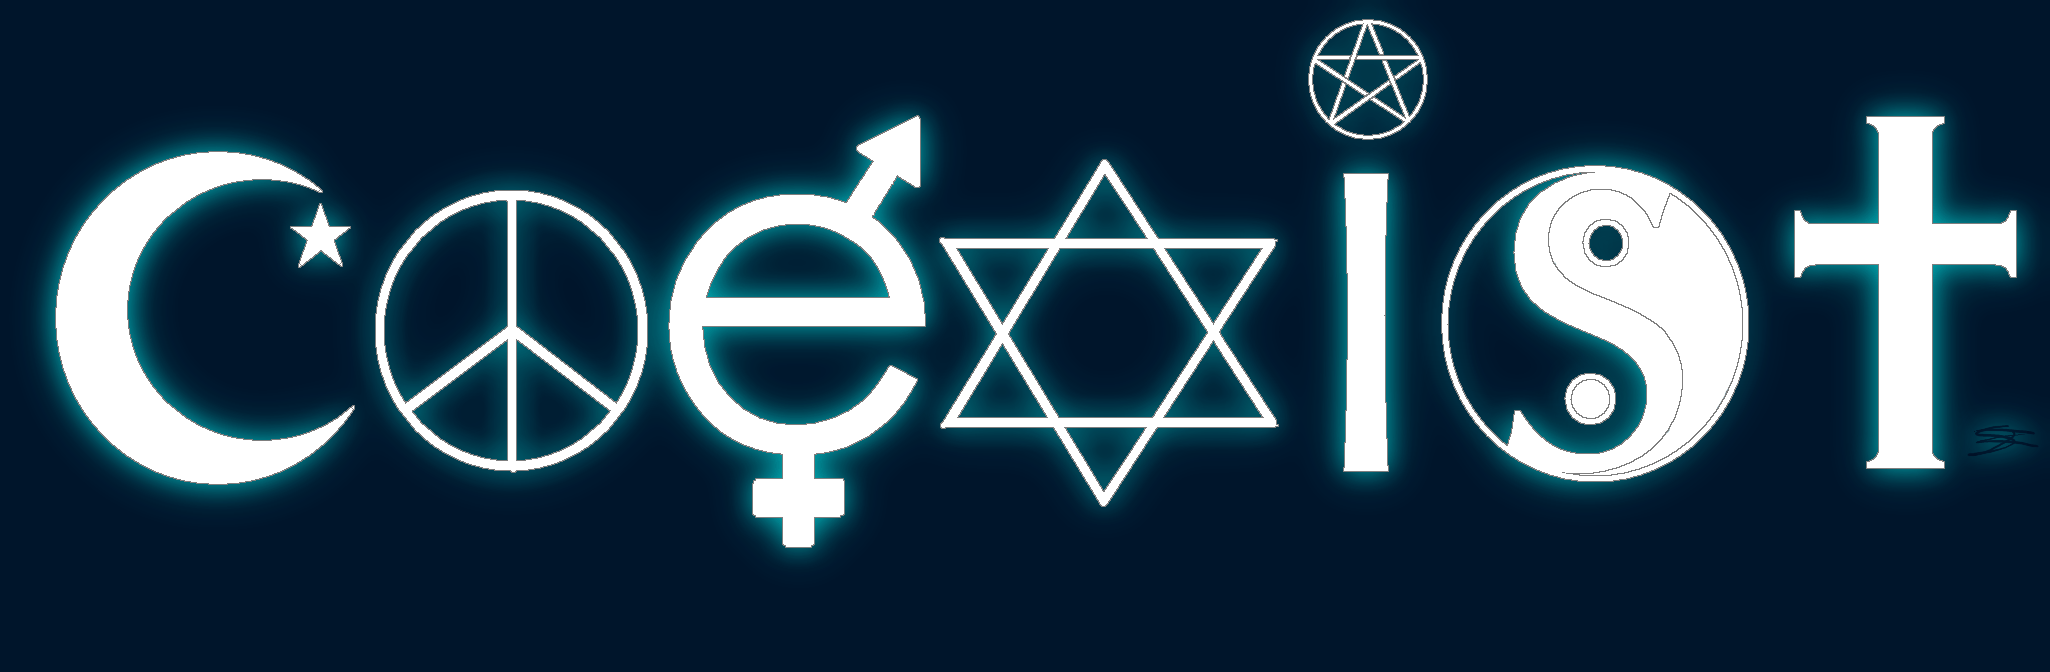 https://i2.wp.com/chirho.jasonkpowers.com/images/coexist_by_chima.png